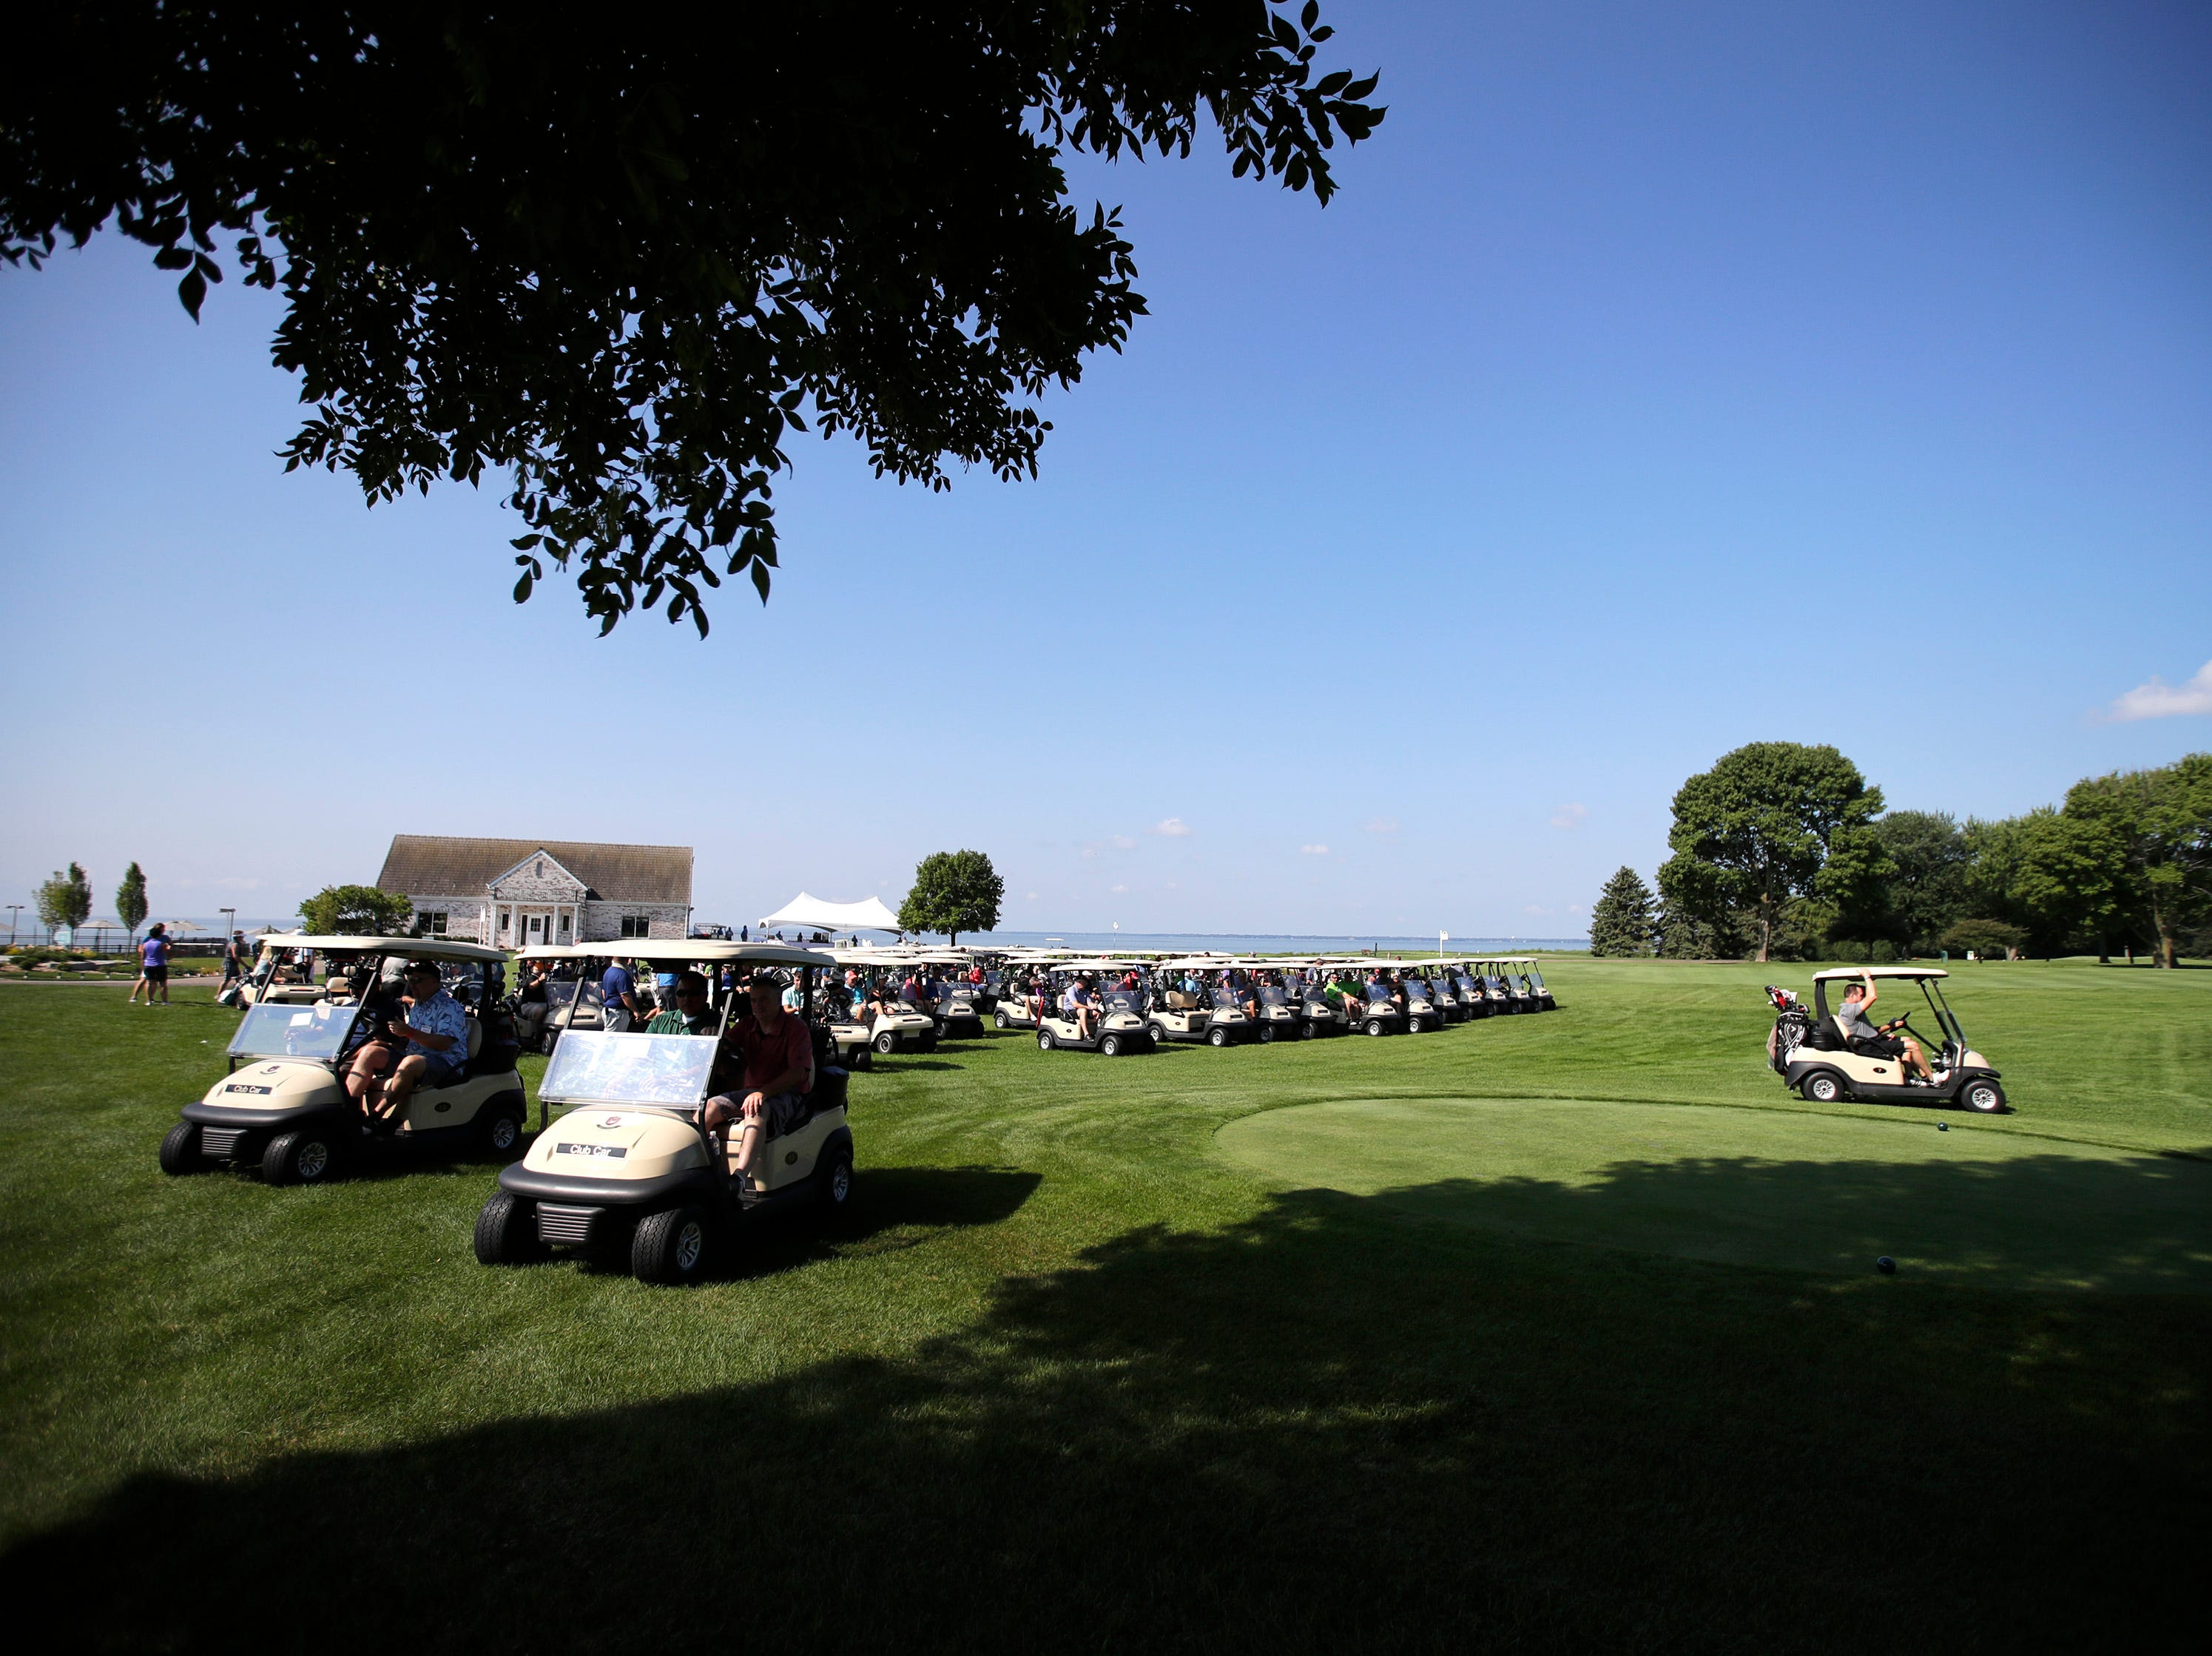 A scramble gets the U.S. Venture Open started Wednesday, Aug. 8, 2018, at North Shore Golf Club in Menasha, Wis.